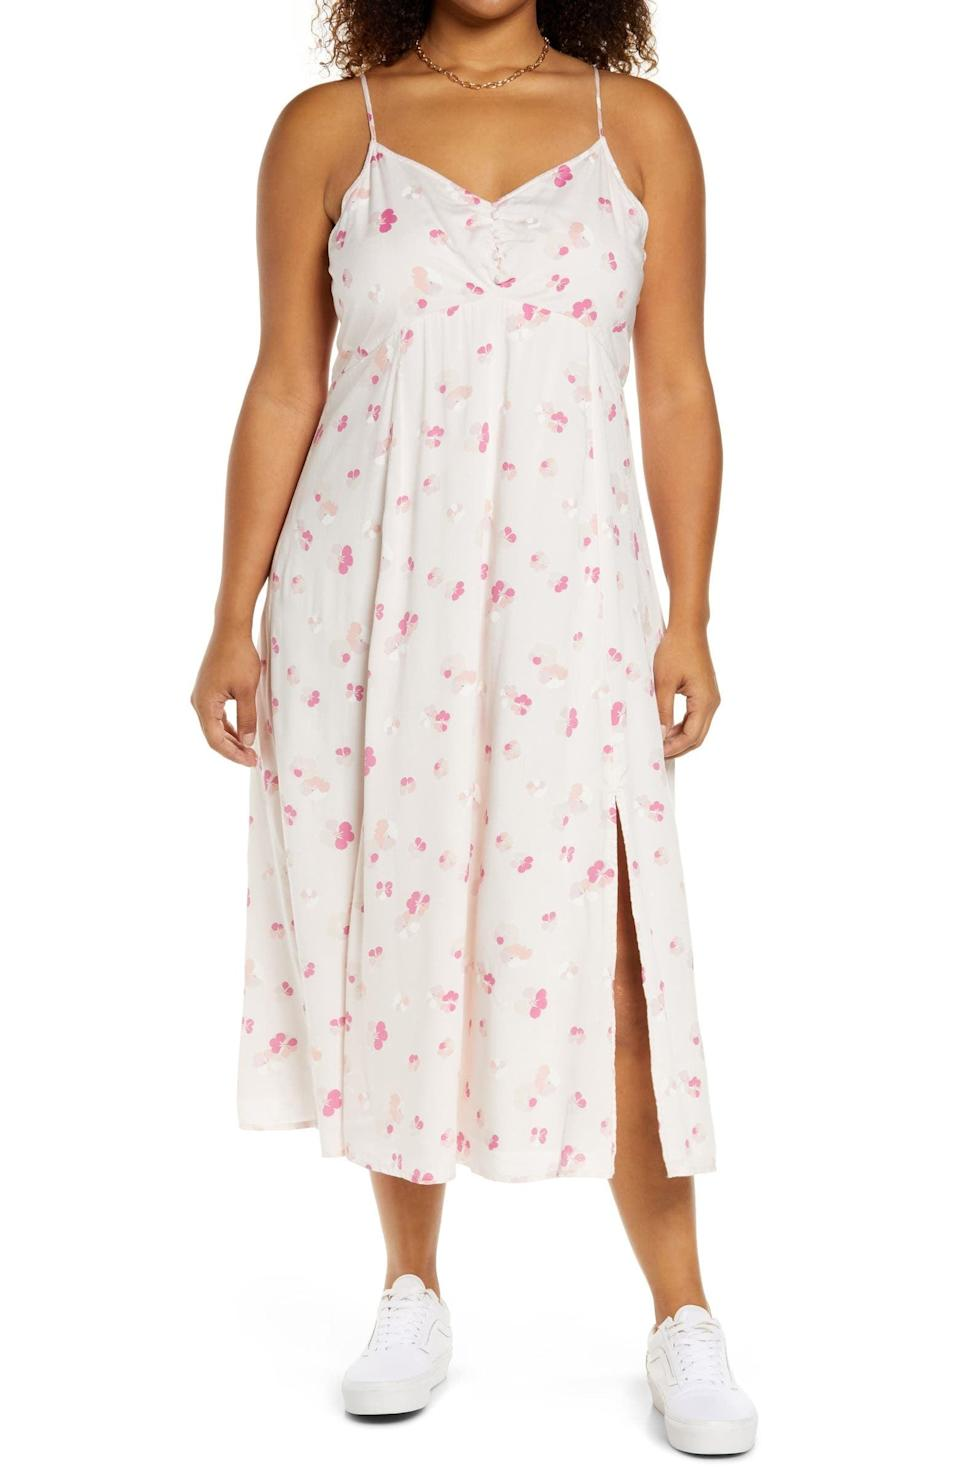 <p>The print and silhouette of this <span>BP. Floral Cami Midi Dress</span> ($69) make it stylish and airy. Pair with sneakers for a laidback look or low-heeled mules for a dressier appearance.</p>